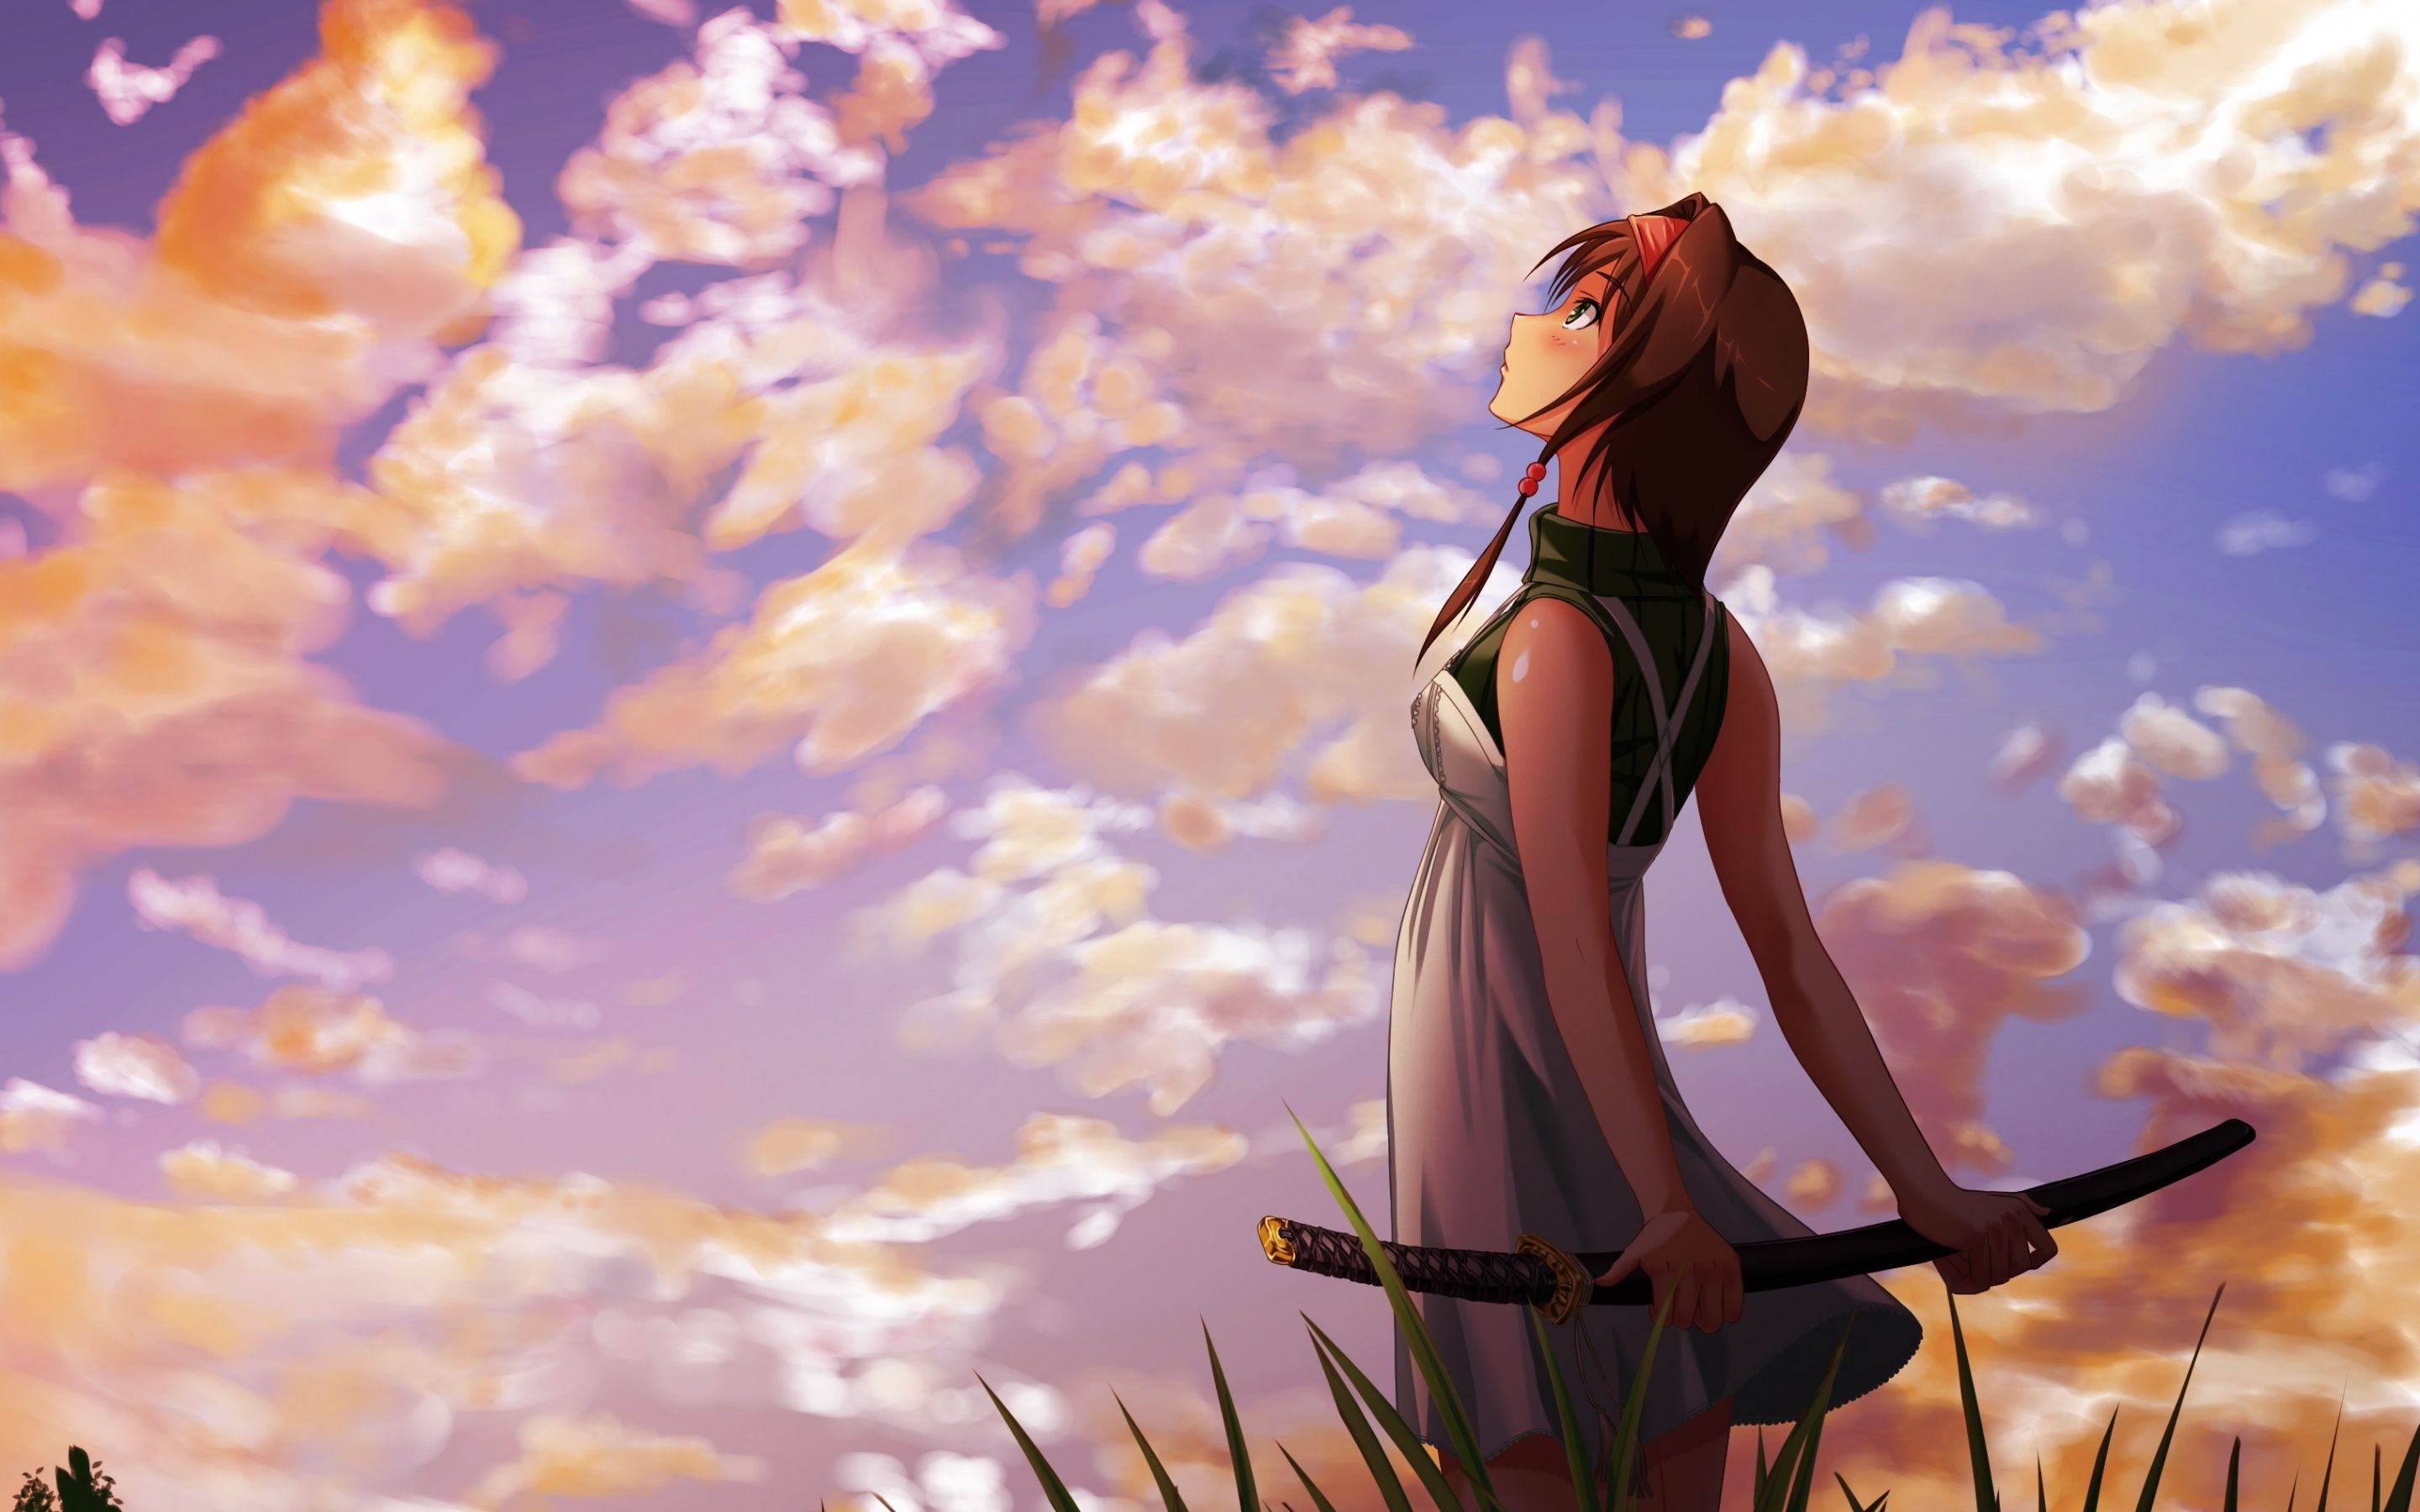 Lonely Anime Girl Wallpapers Top Free Lonely Anime Girl